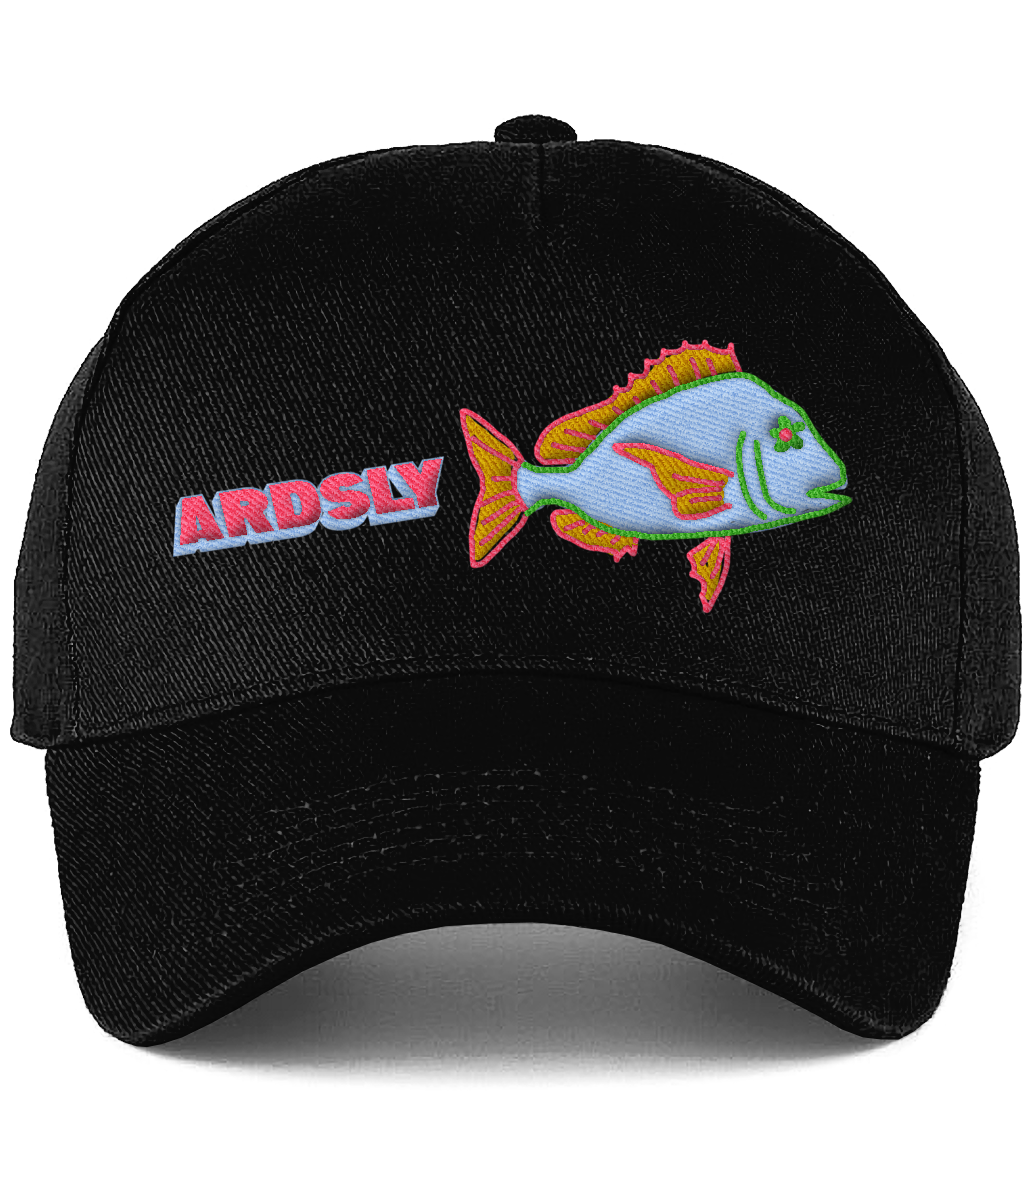 Fish Shop black Cap / Embroidered-to-Order